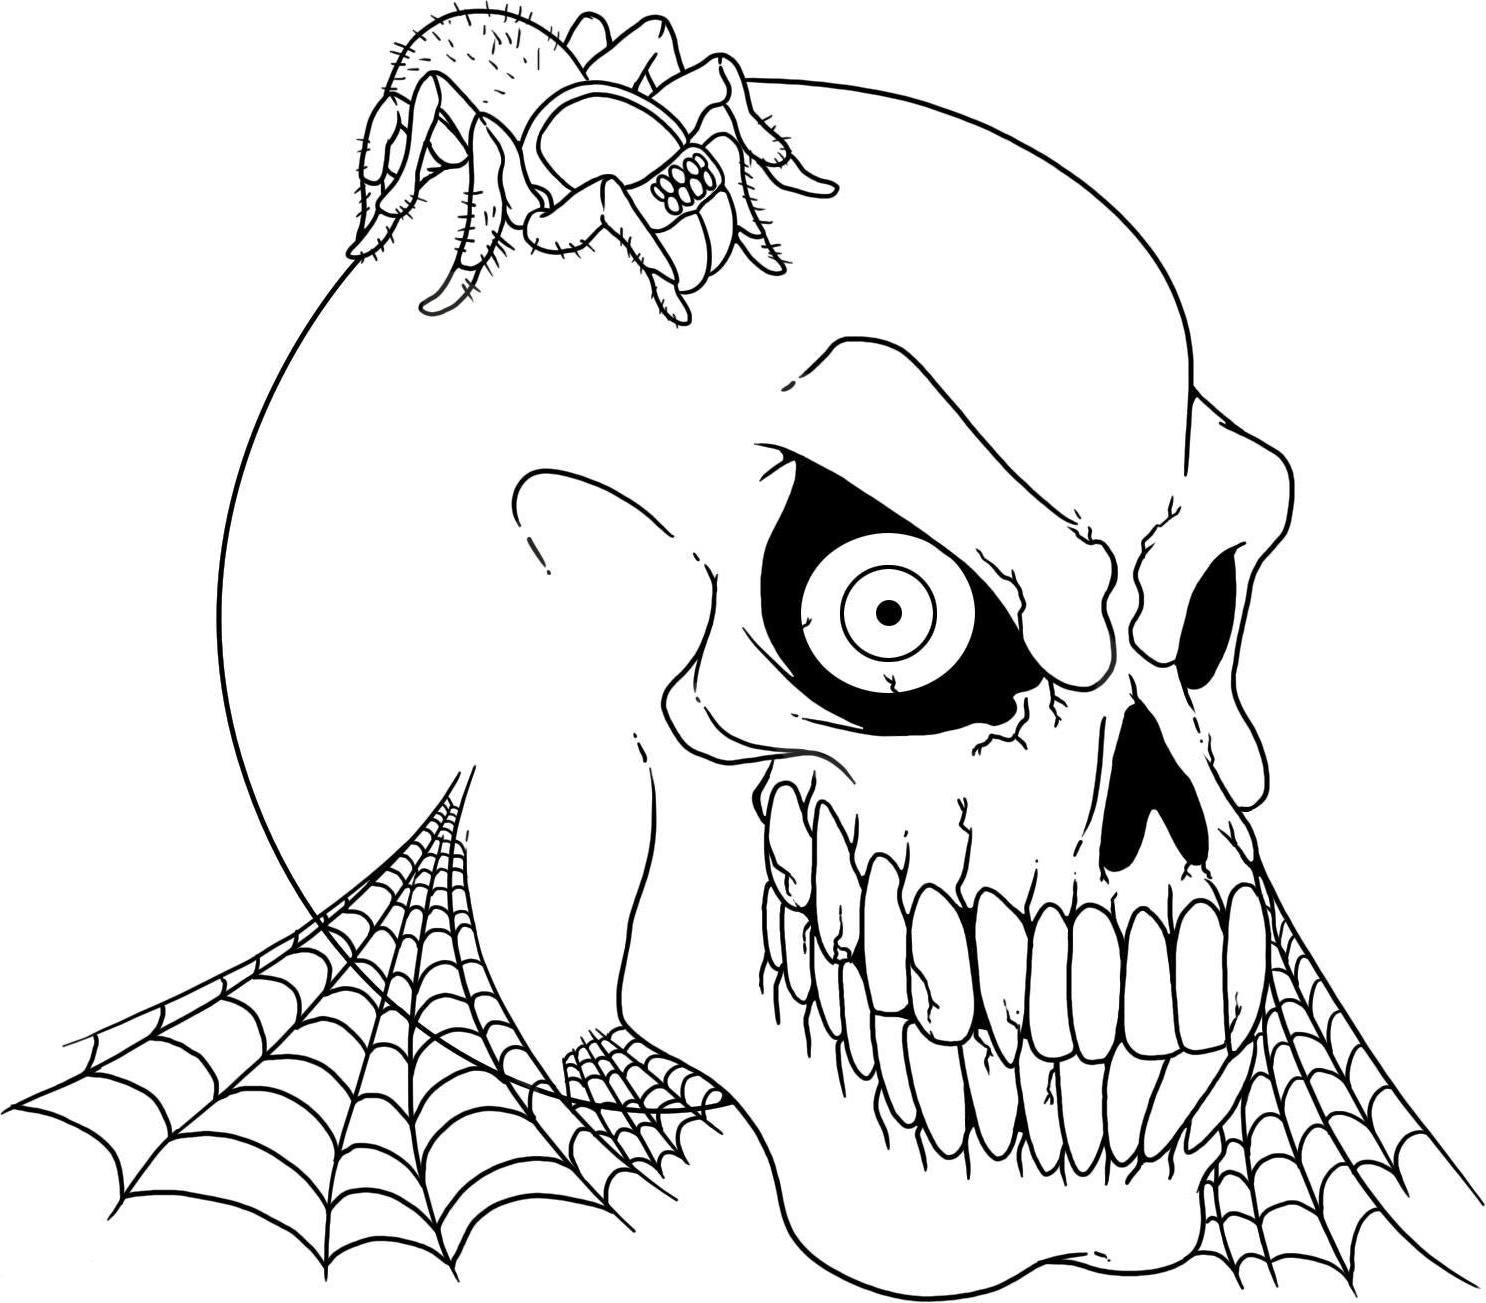 Image result for scary halloween drawings